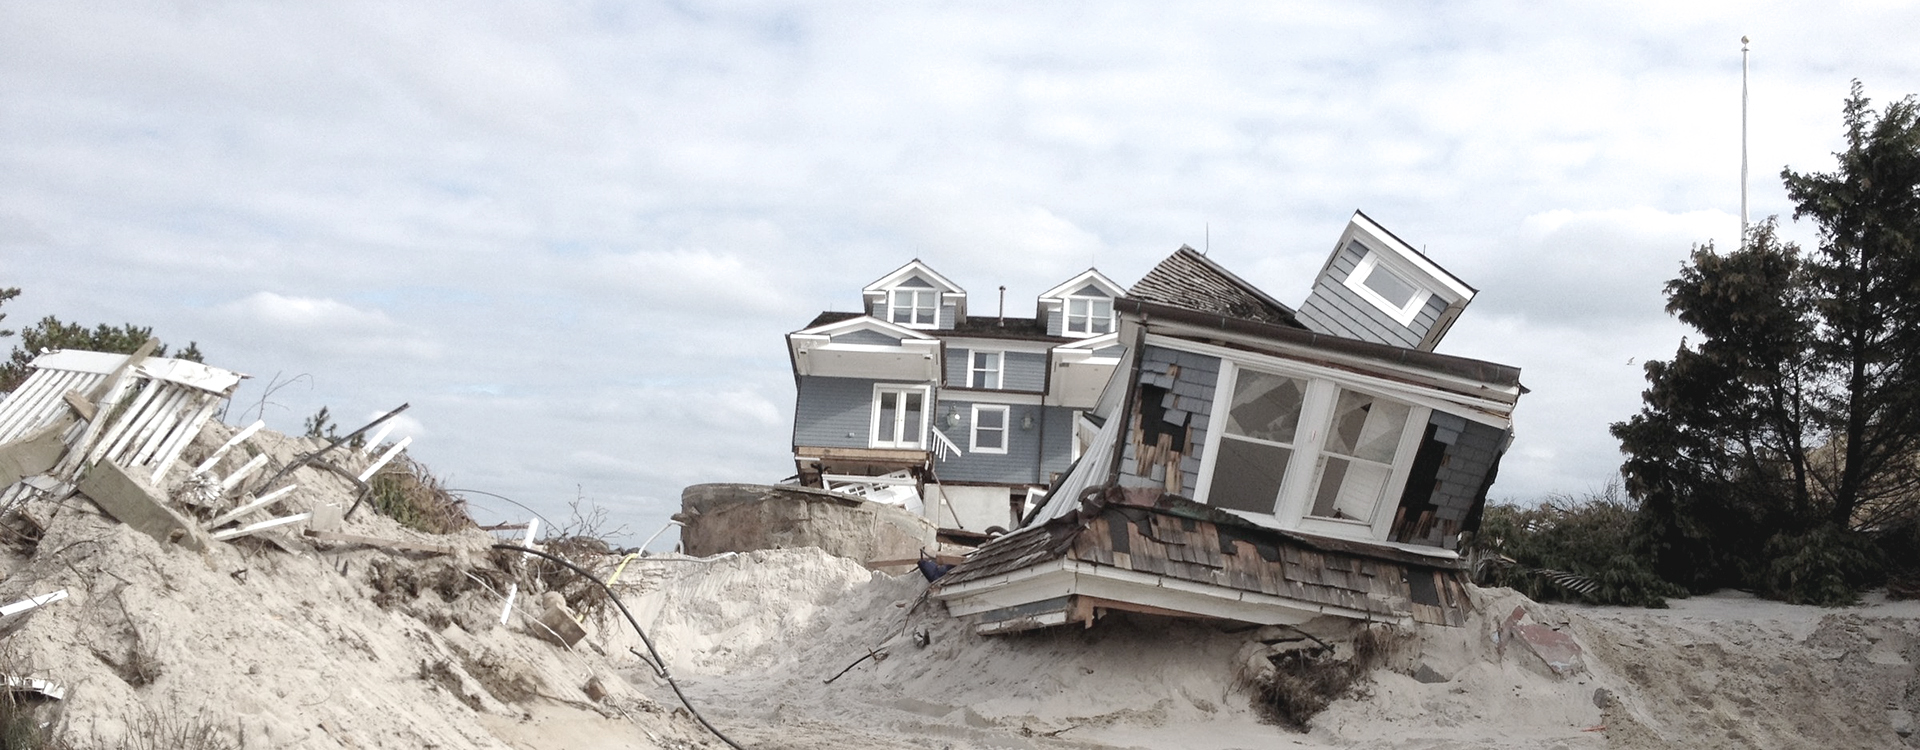 Beach side house destroyed by hurricane Sandy